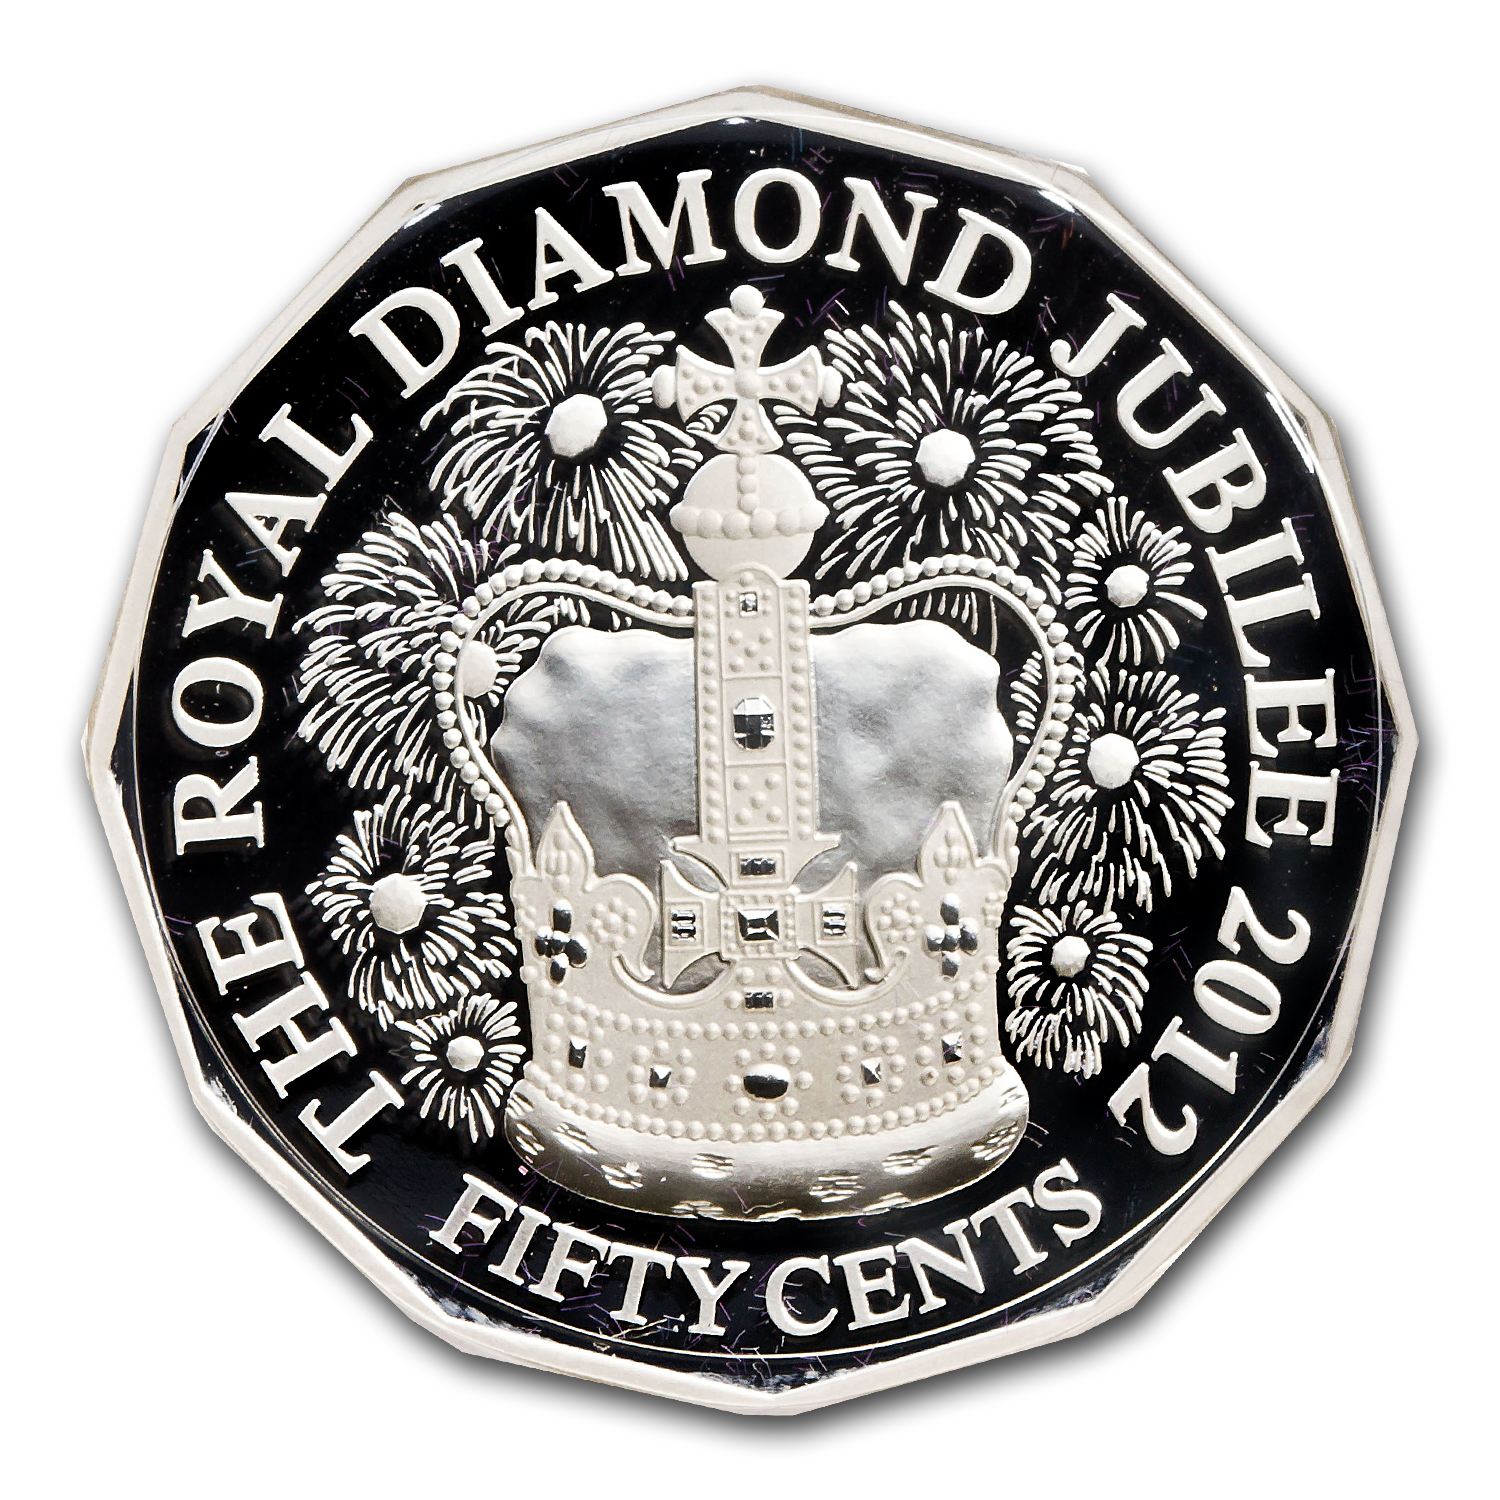 Royal Australian Mint 2012 Silver Proof - Diamond Jubilee